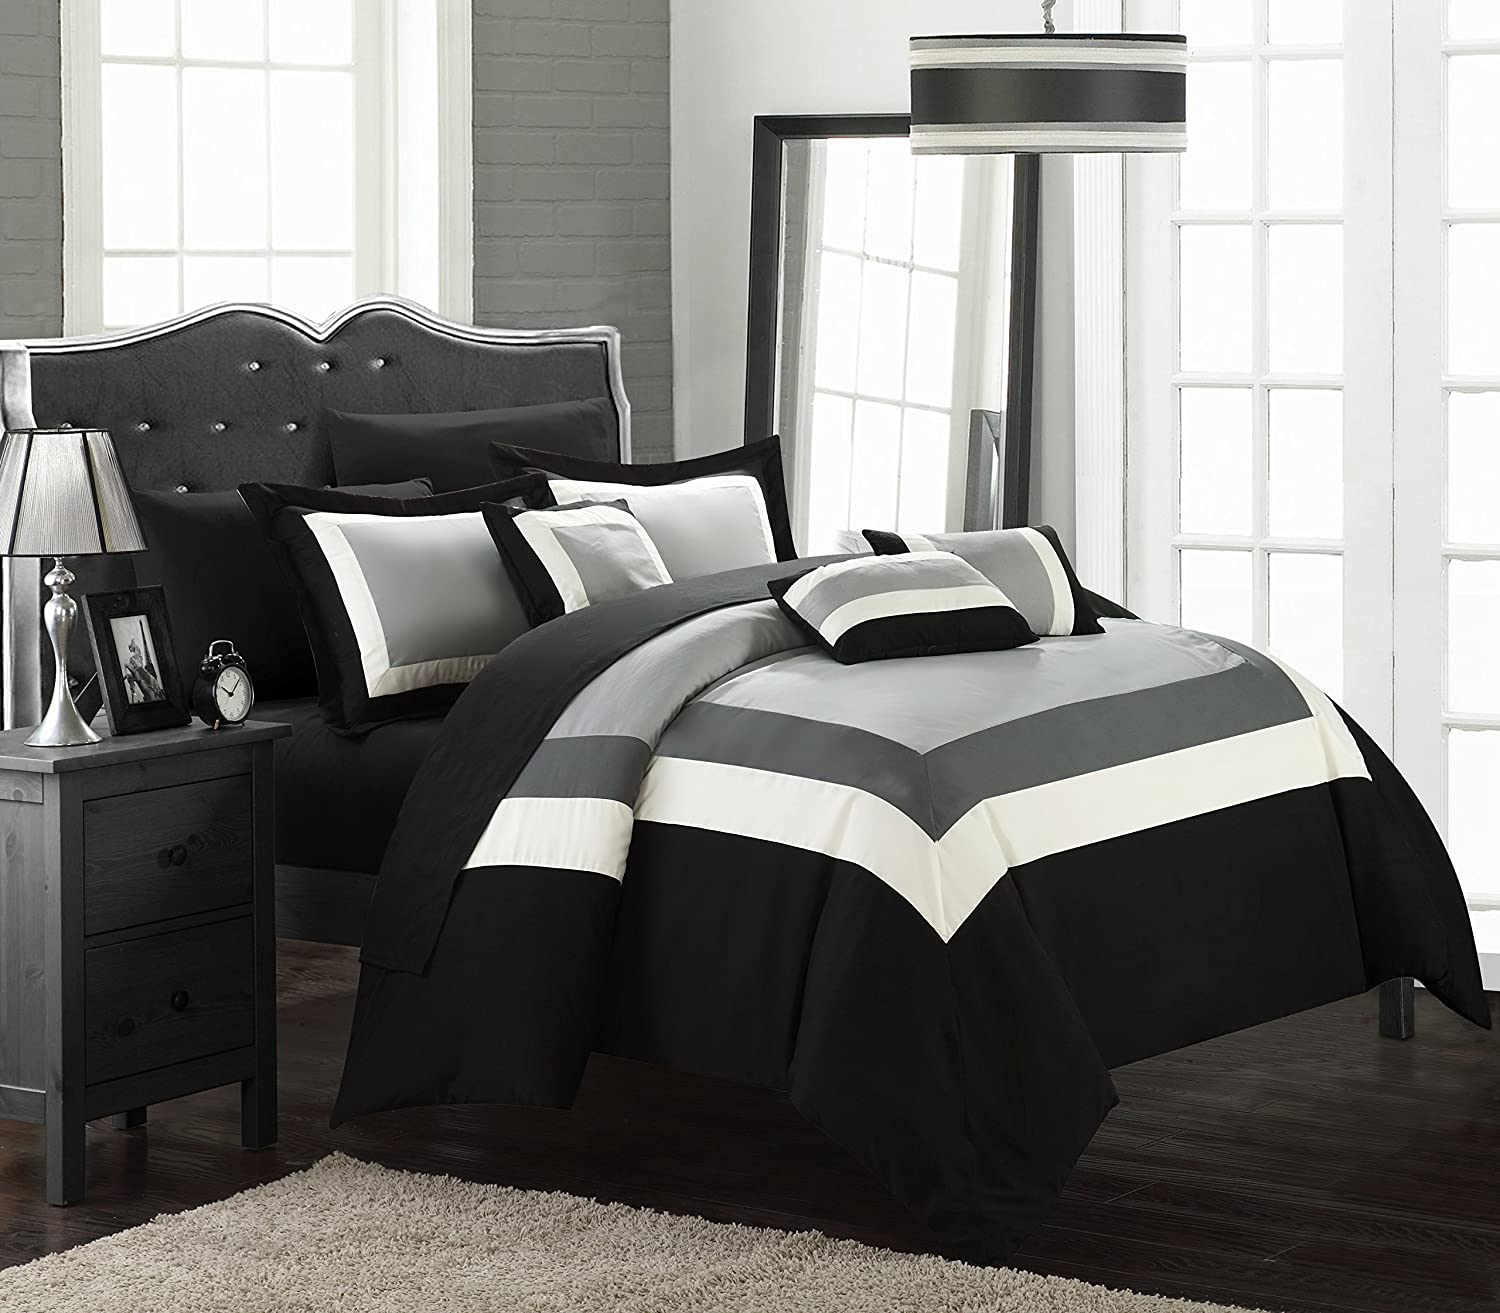 Amazoncom Chic Home Duke Comforter Set Queen Black Home Kitchen